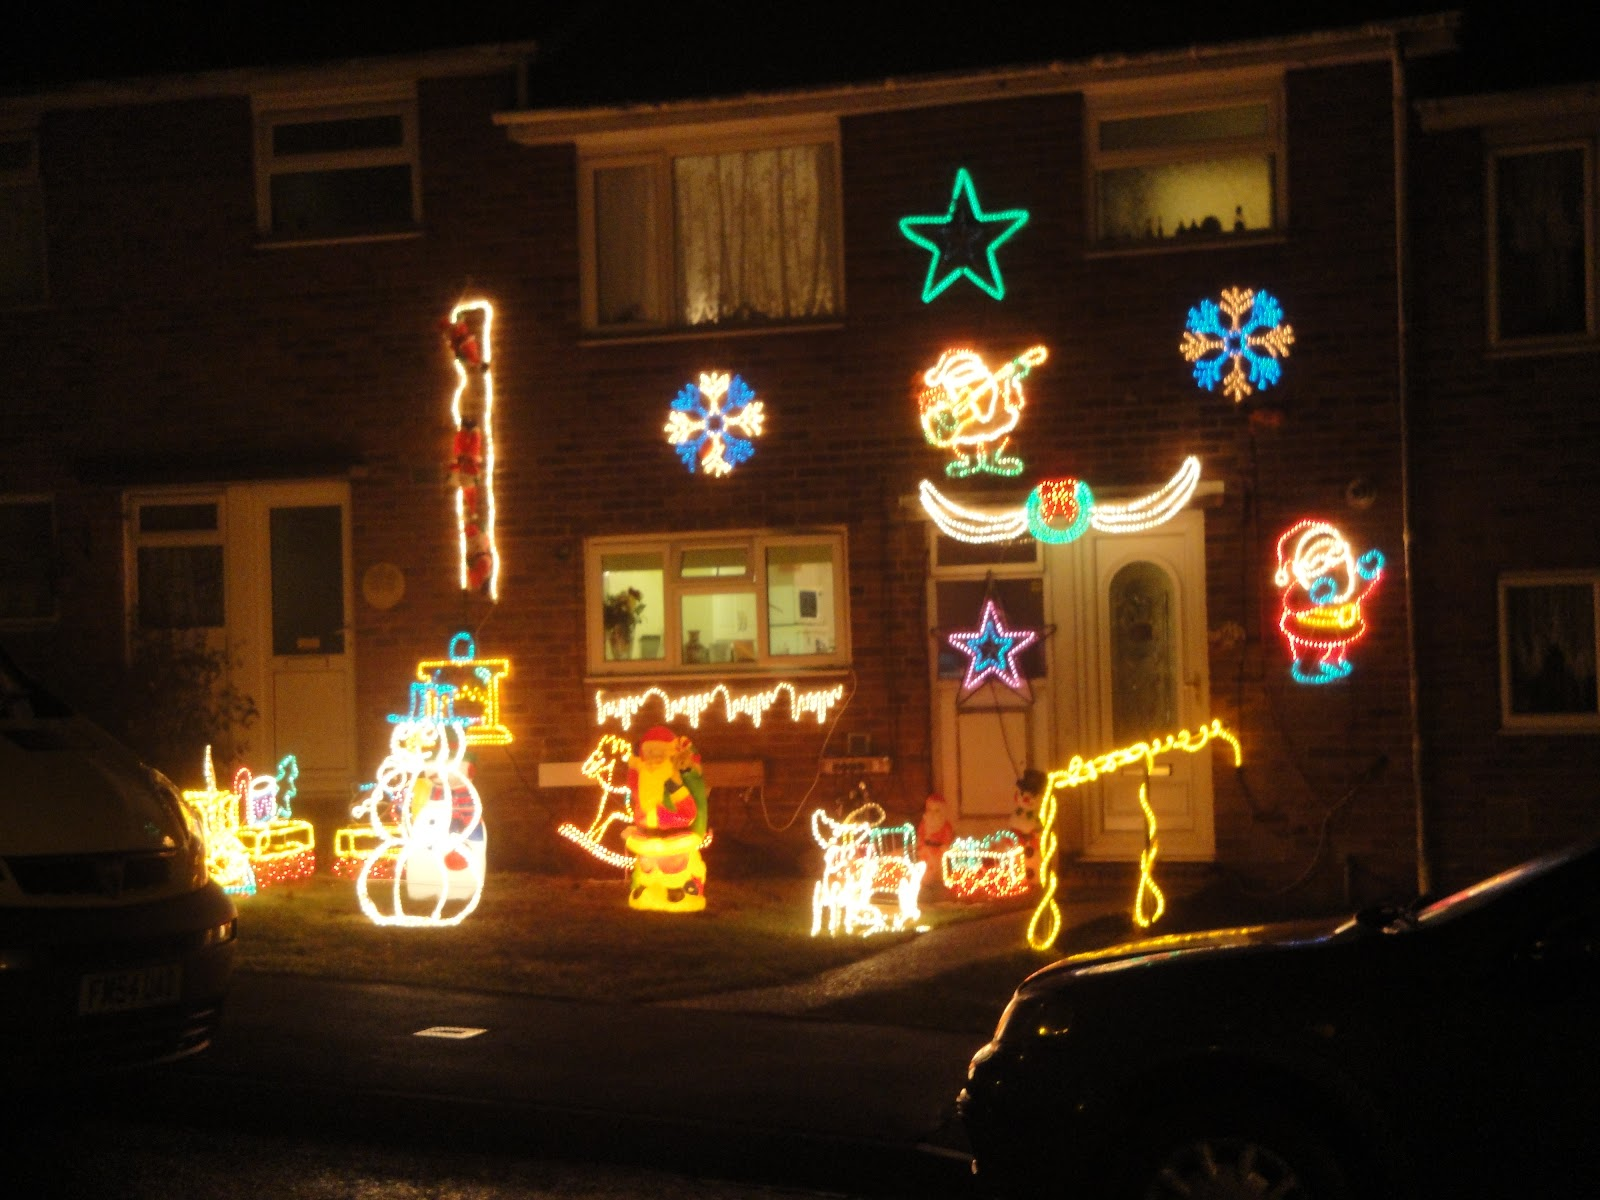 Newport_Furrlongs_top_house_Christmas_decorations_2010.JPG